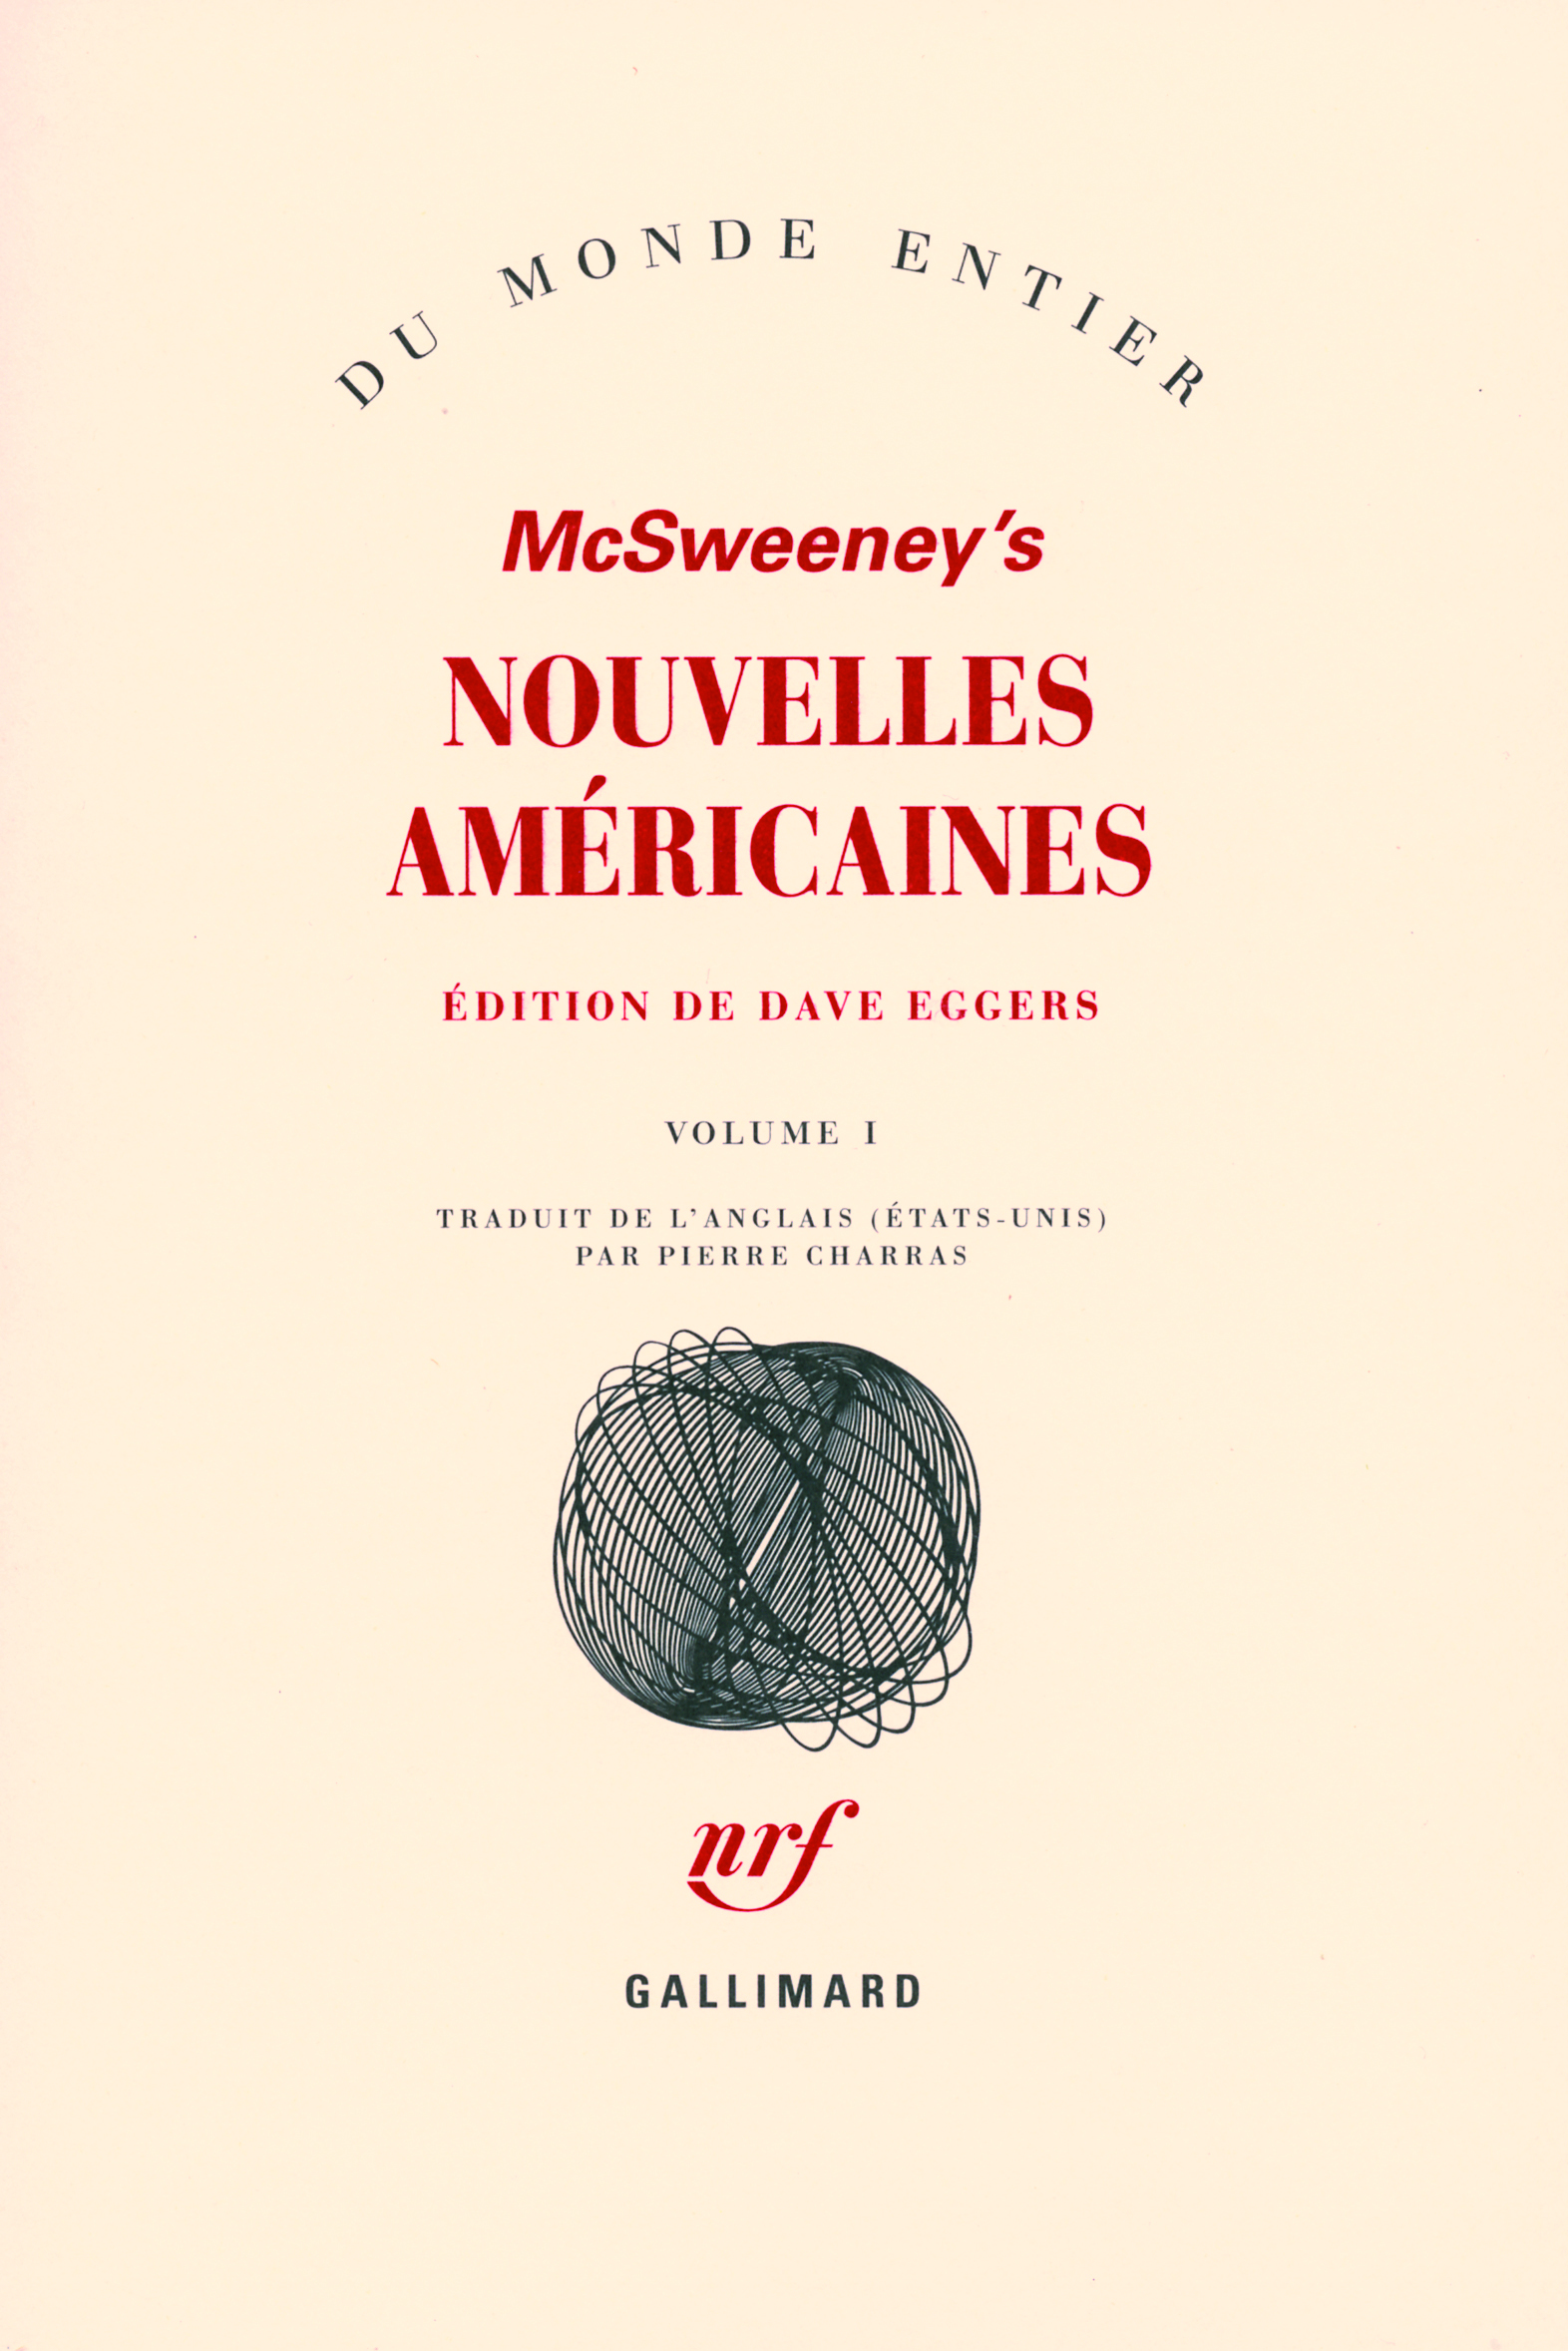 MCSWEENEY'S : NOUVELLES AMERICAINES (TOME 1)